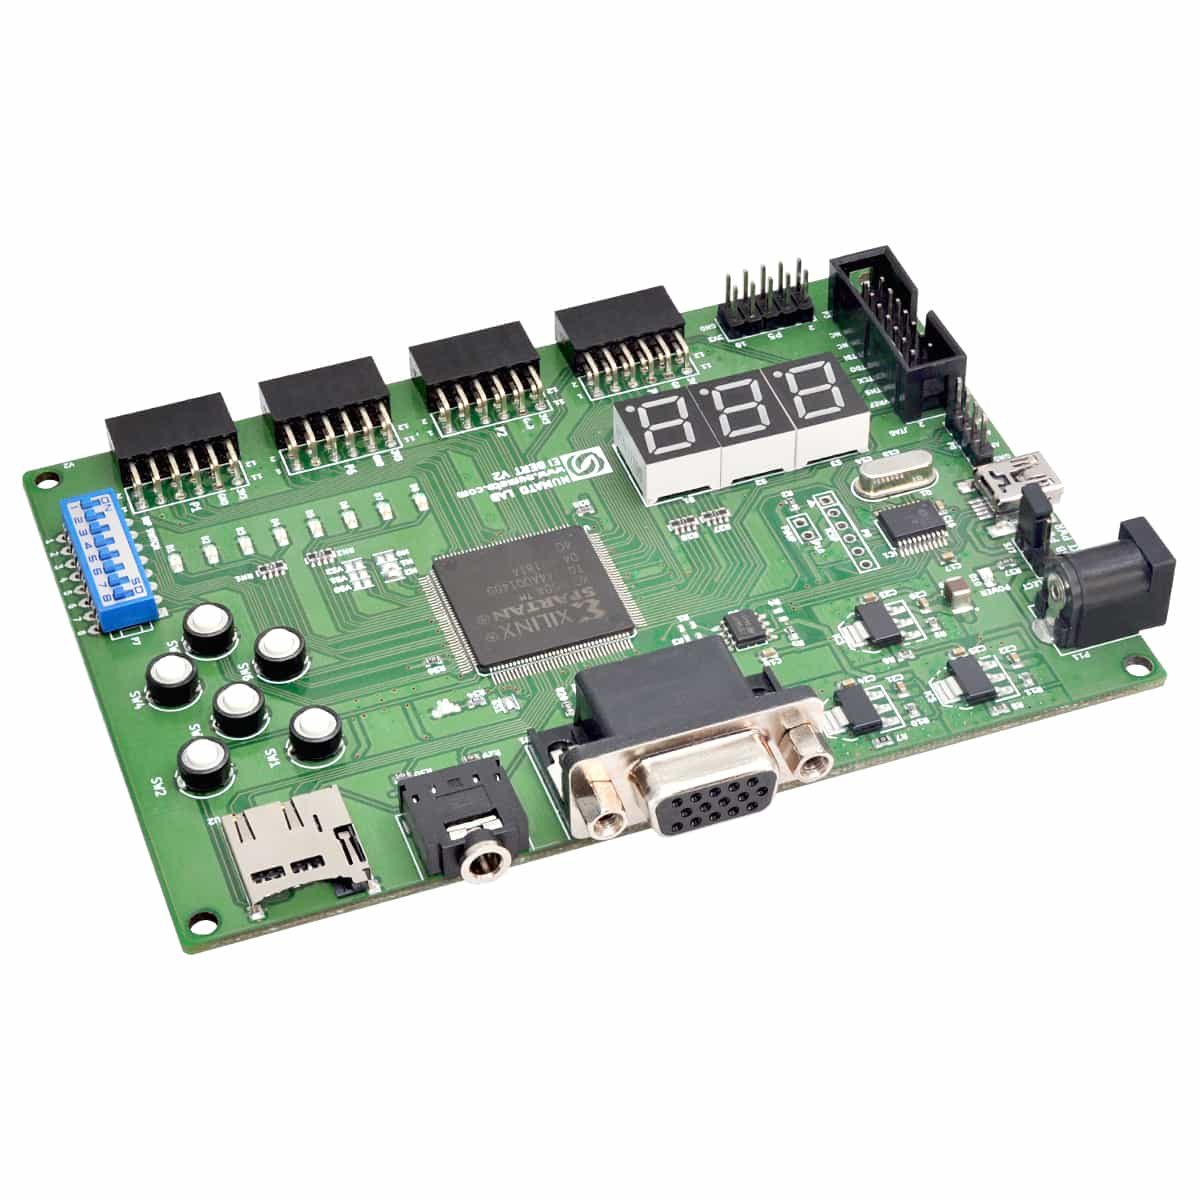 Styx Zynq 7020 FPGA Module With Dual Channel USB Device | Numato Lab